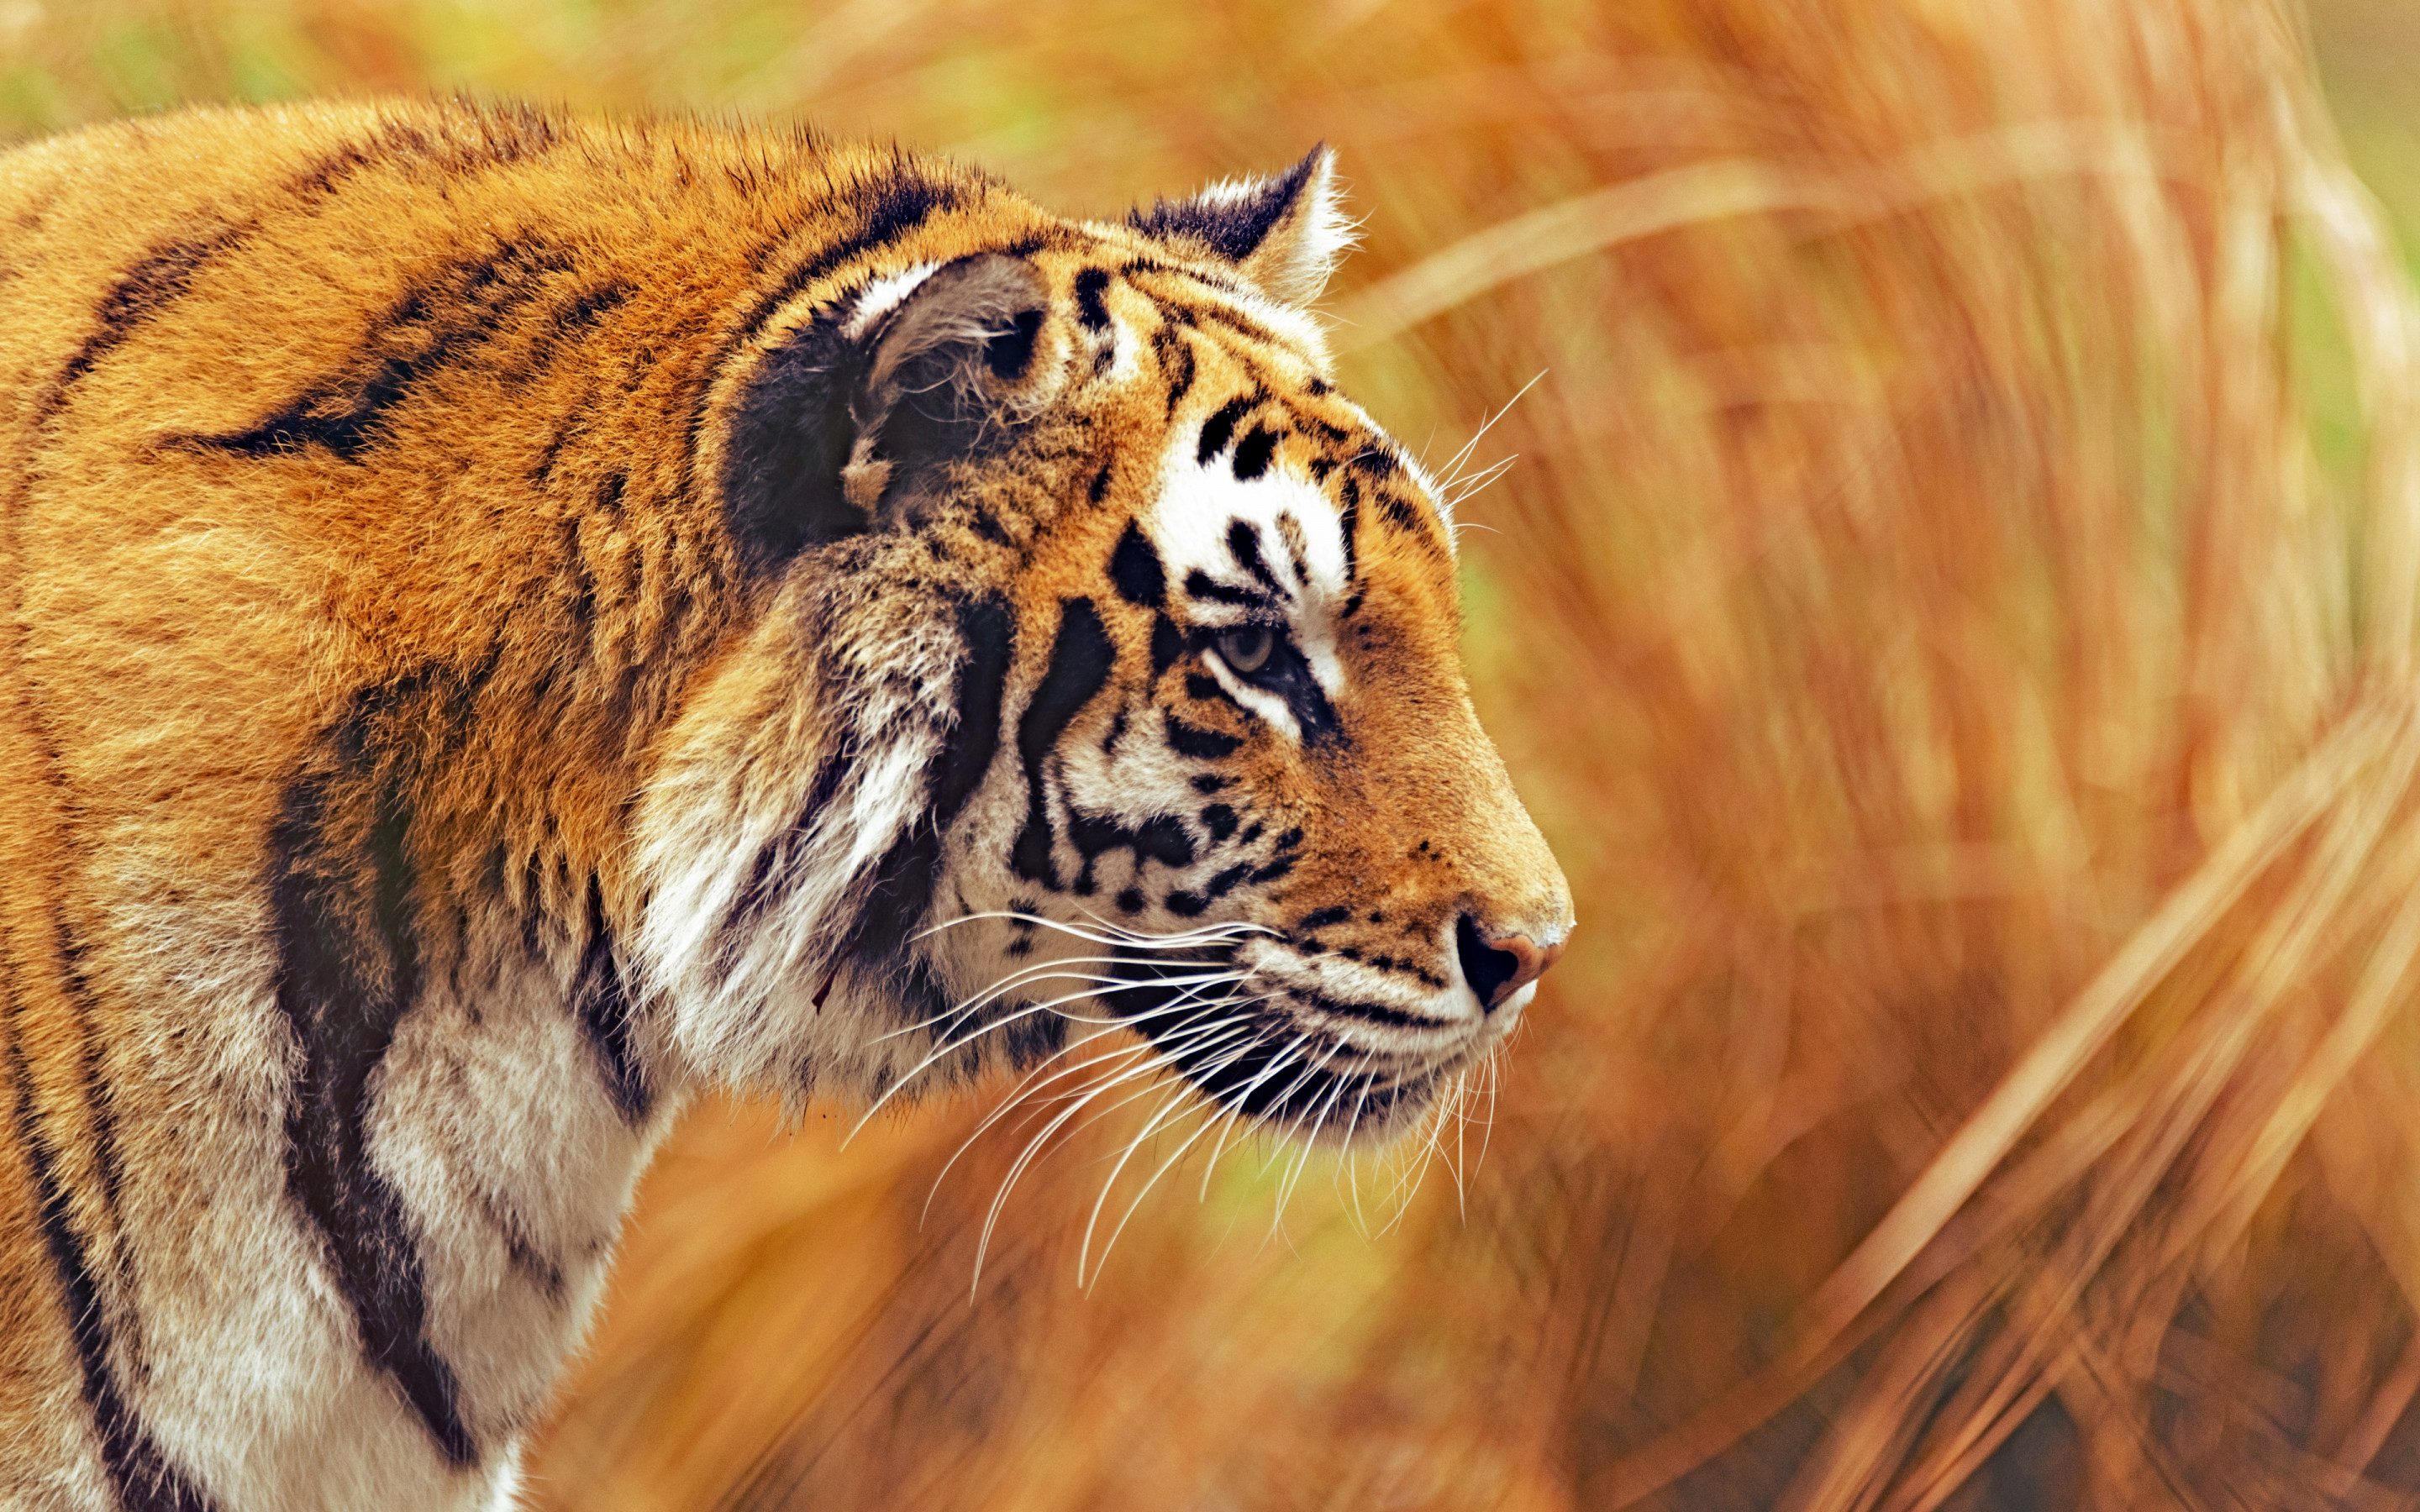 Bengal tiger | 2880x1800 wallpaper